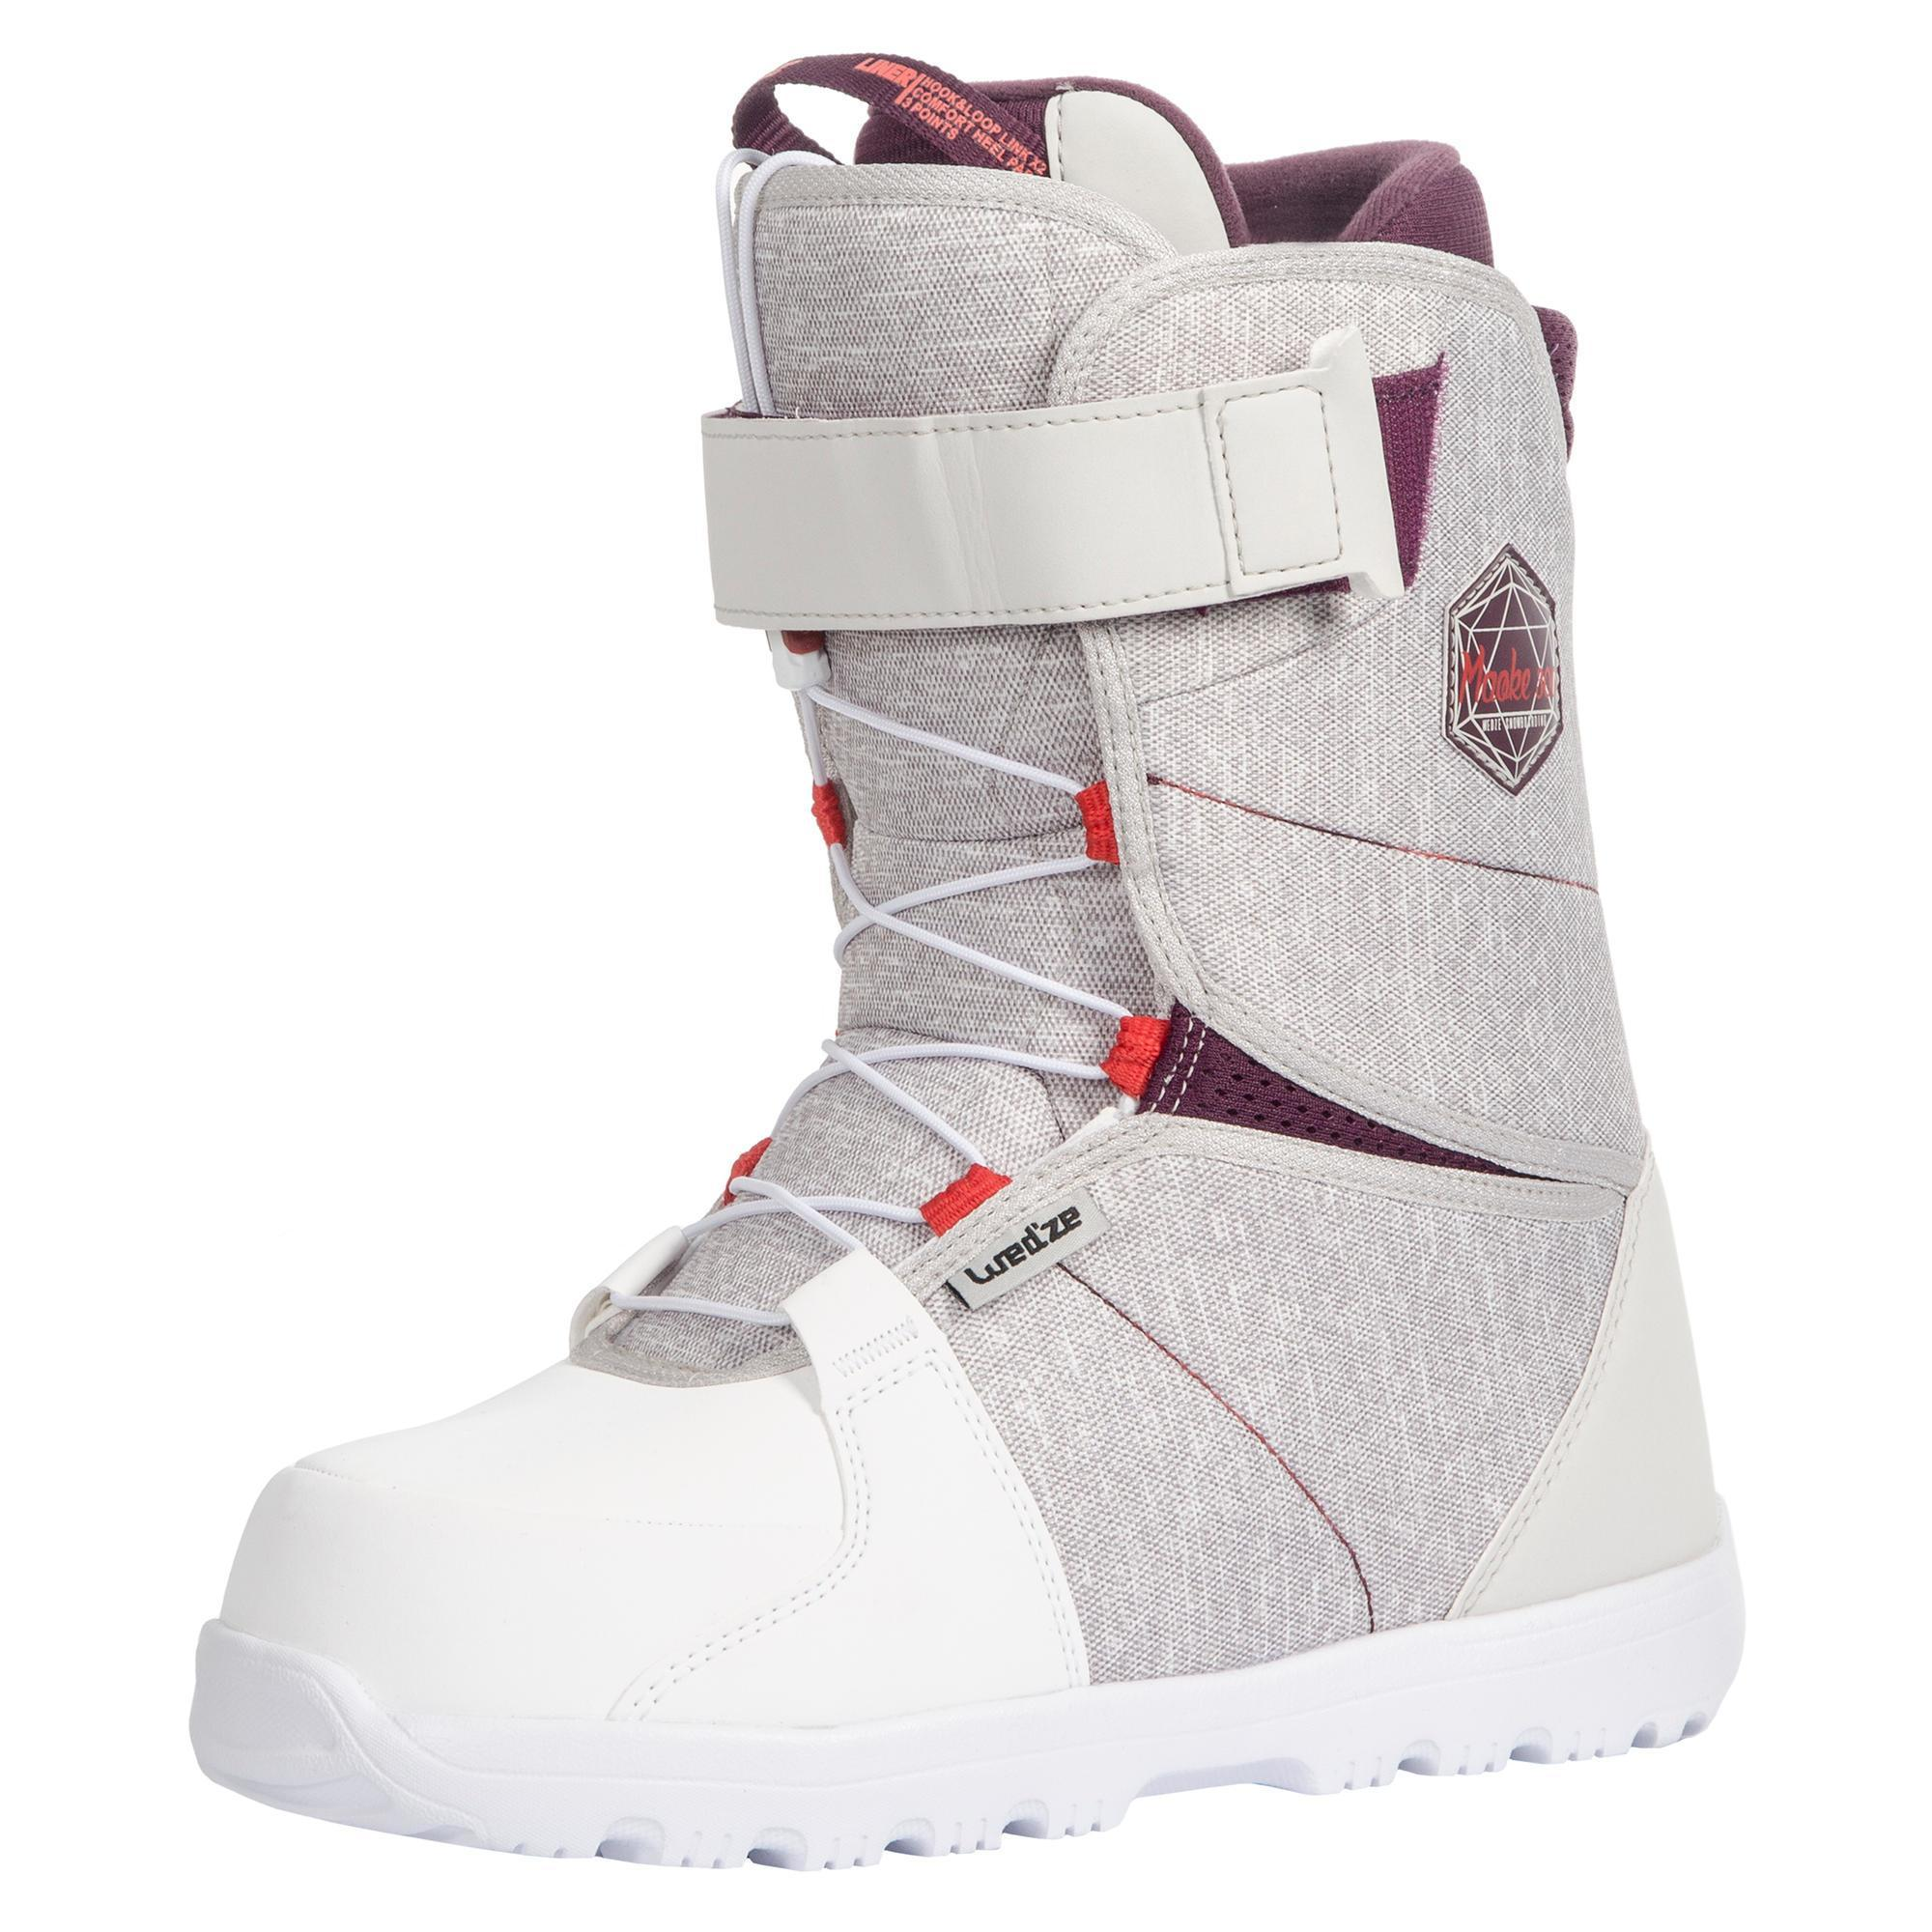 Damen Snowboardschuhe Fast Lock 2Z Maoke 300 All Mountain Damen weiß | 03608449879842